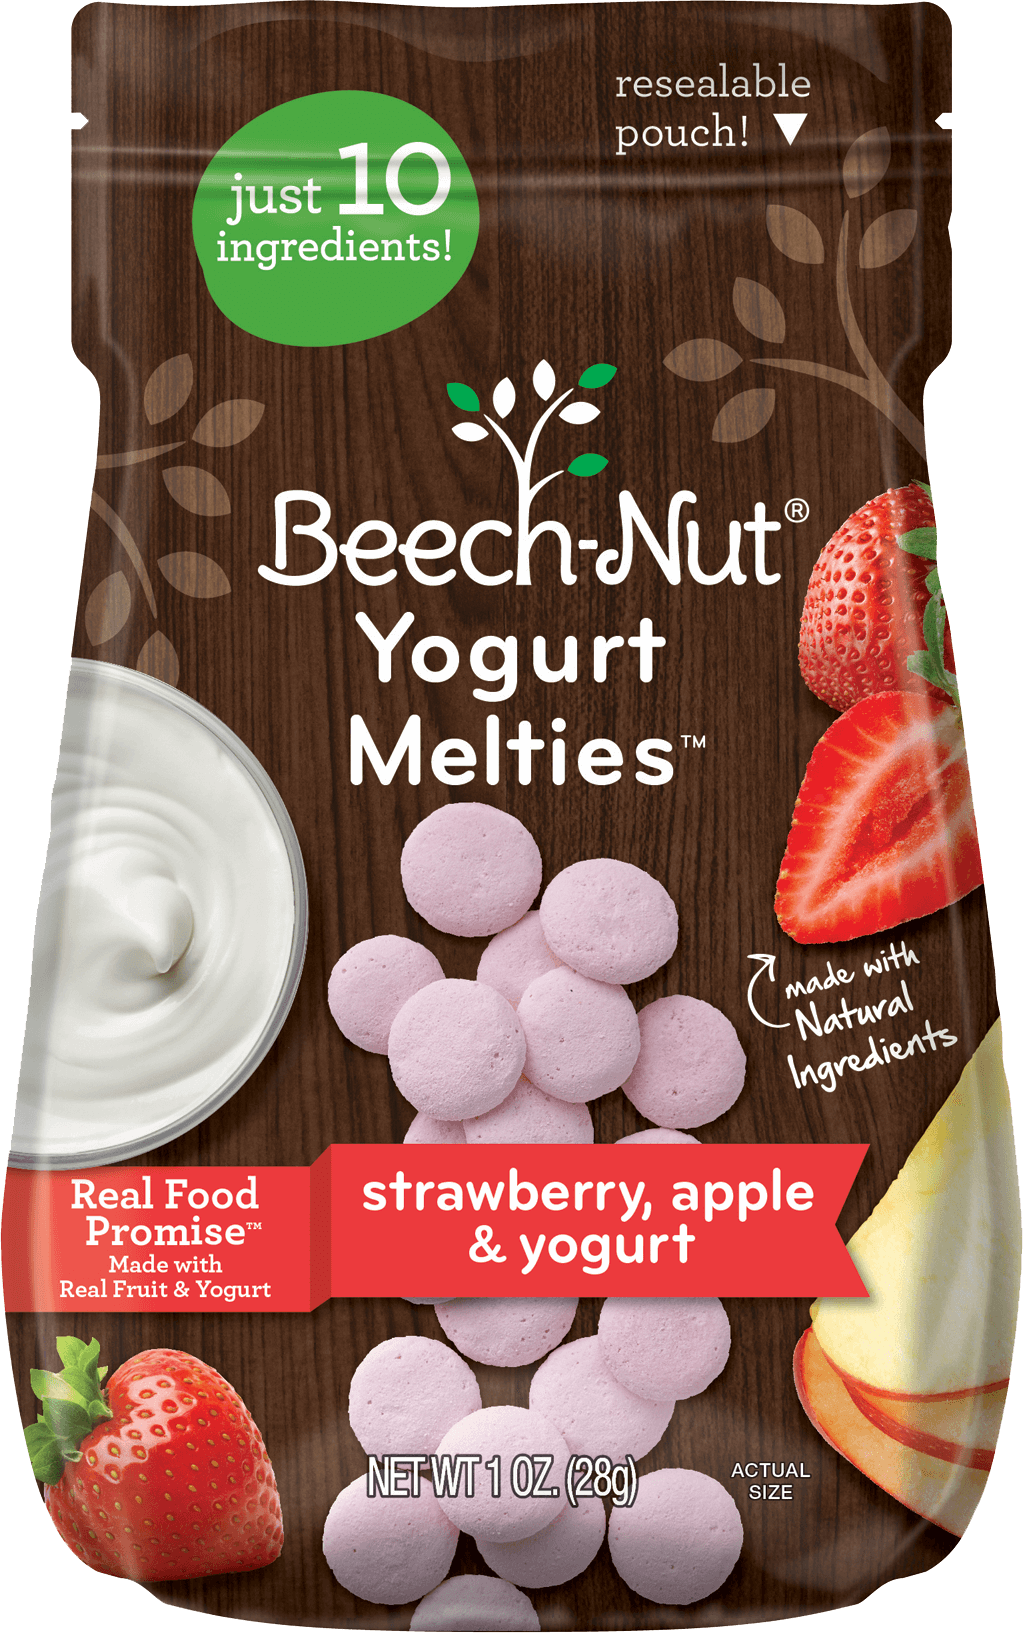 strawberry, apple & yogurt Melties